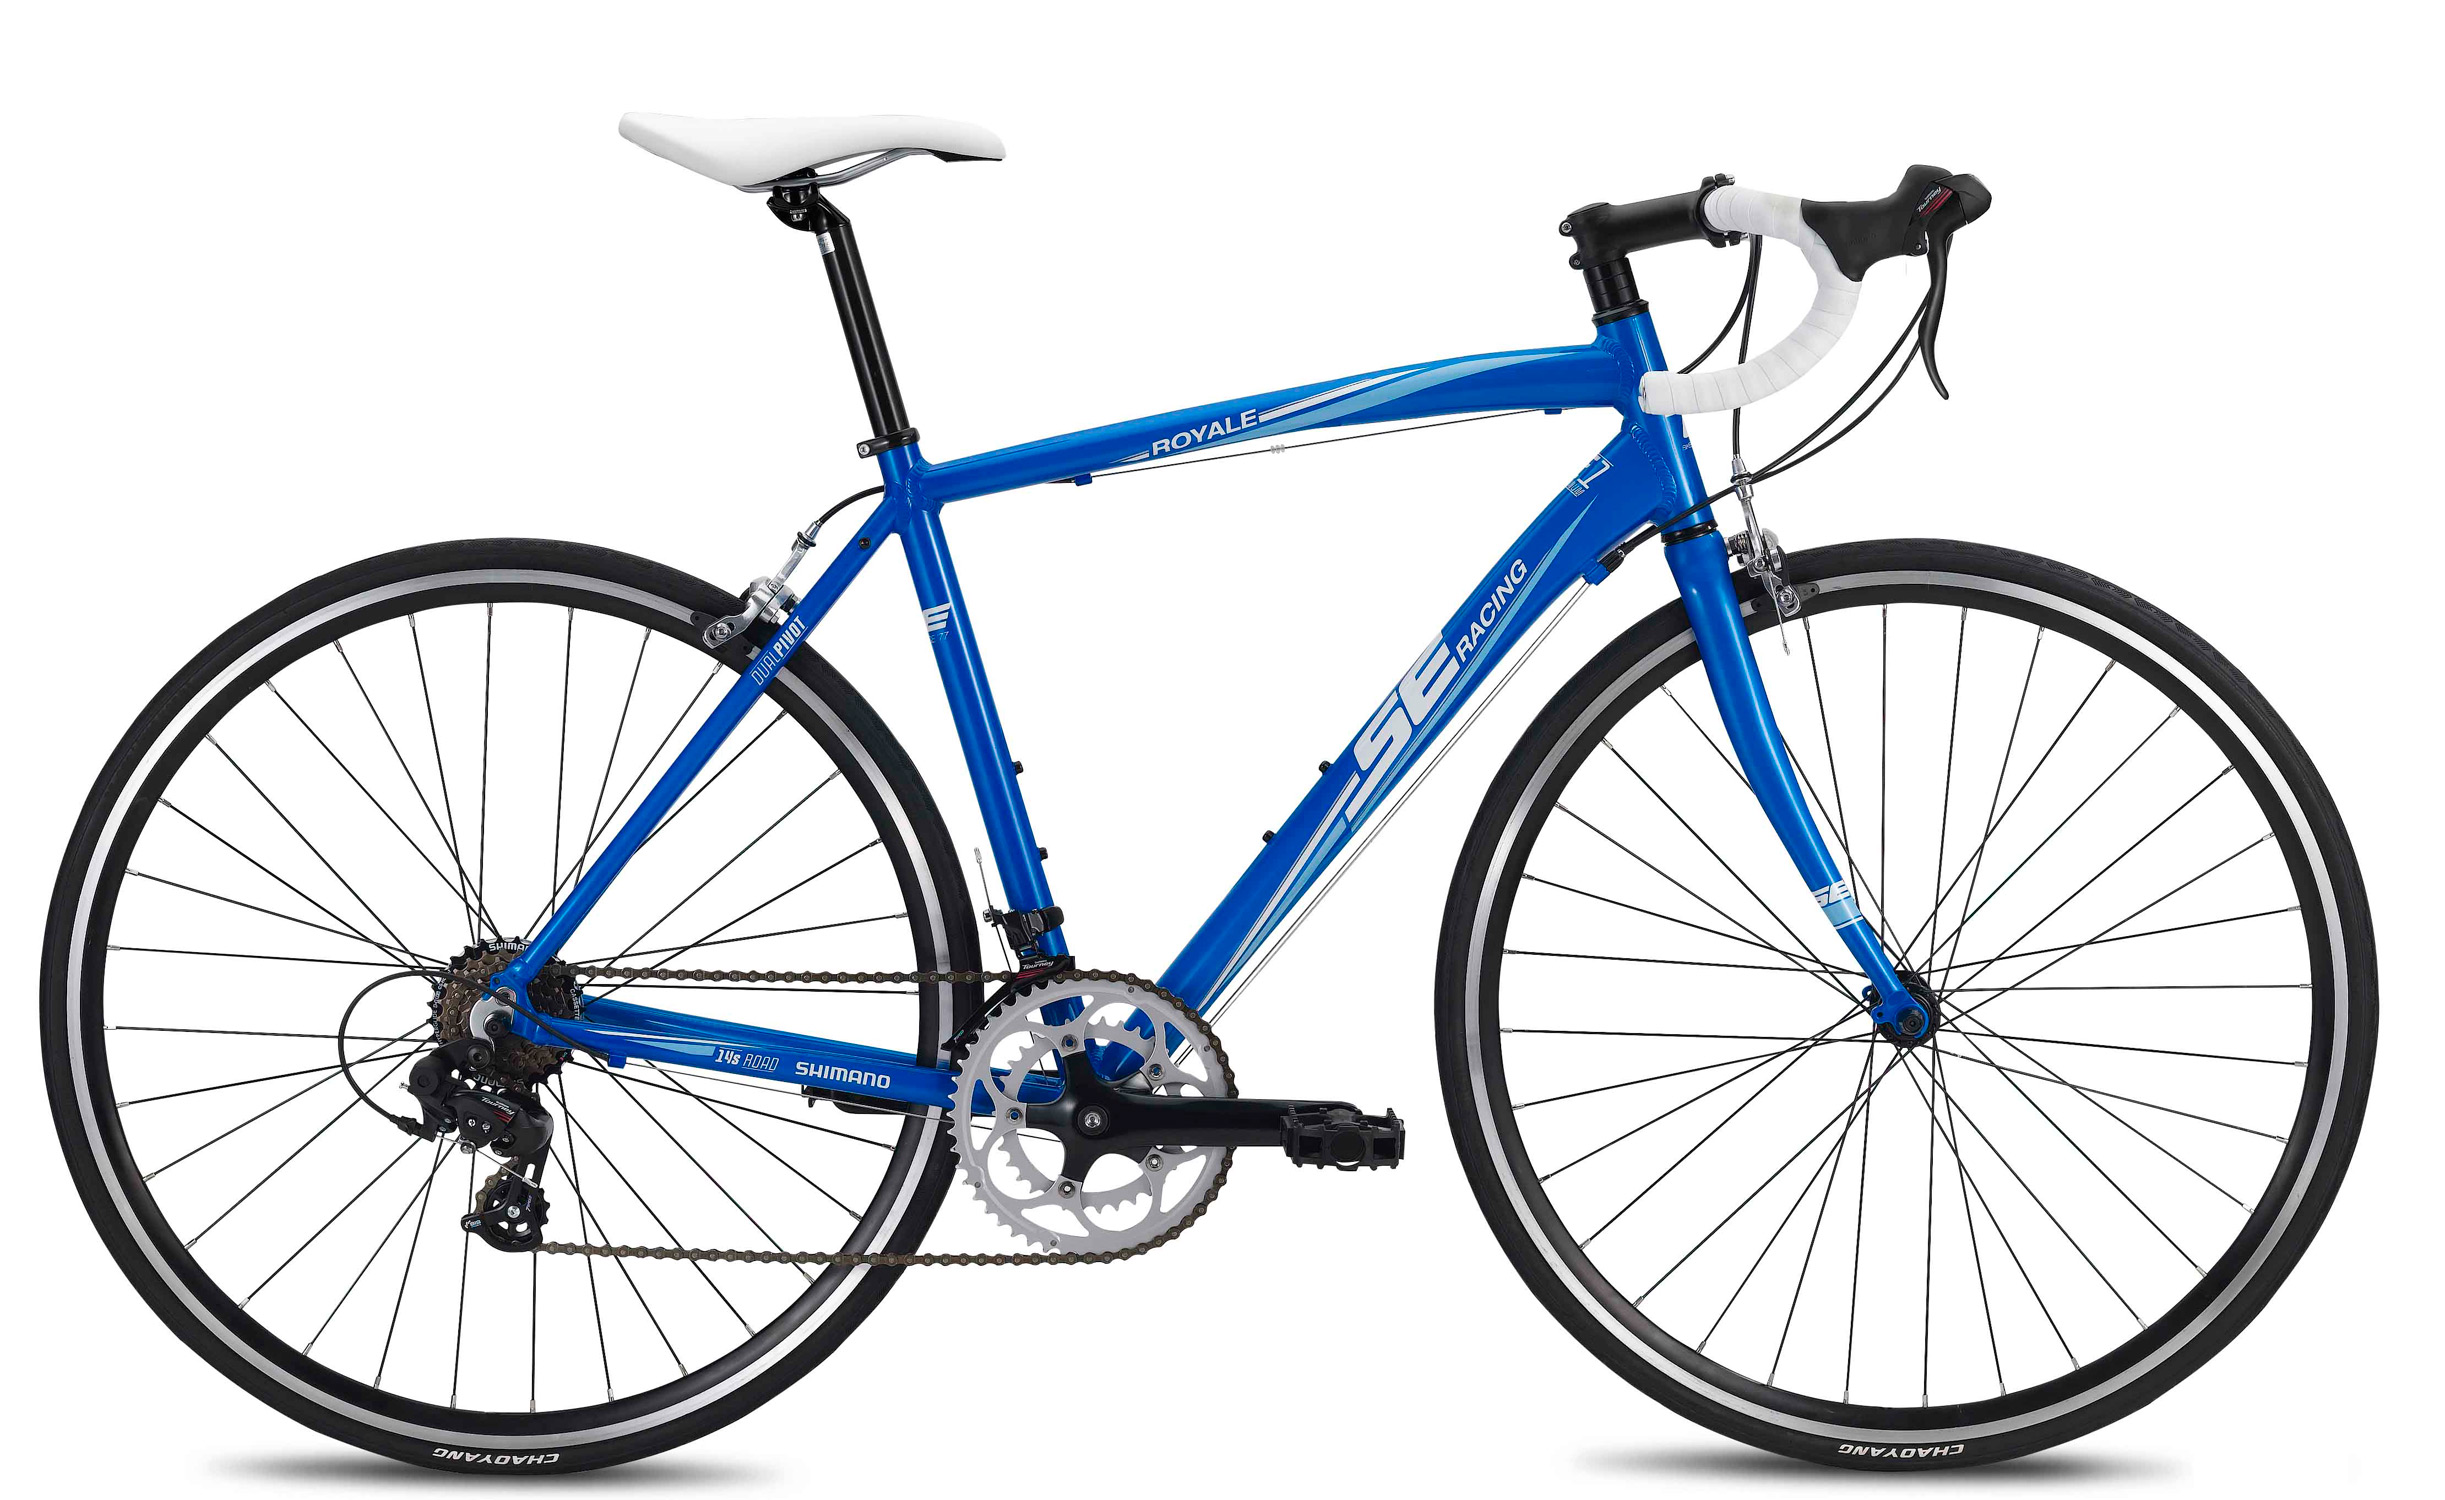 "MTB Introduce yourself to the world of road bikes through the lightweight aluminum chassis of the Royale 14. An alloy road fork, coupled with Shimano shifting will allow you to find a gear for every occasion - whether on a solo fitness ride or competing in a local race.Key Features of the SE Royale 13 Speed Bike: Sizes: XS (42cm), S/ M (46cm), M (50cm), M/ L (54cm), L/ XL (58cm) Color(s): 80% Matte Black, Blue Main frame: SE 1 alloy, with water bottle mounts Rear triangle: SE 1 alloy, with replaceable hanger Fork: Alloy legs, with 1 1/8"" alloy steerer Crankset: Lasco, 50/ 34T, 7-speed Bottom bracket: Cartridge Pedals: 1-piece resin body, boron axle Front derailleur: Shimano A070, band type 31.8mm Rear derailleur: Shimano A070, 7-speed Shifters: Shimano A070, 14-speed Cassette: Shimano HG-20, 12-28T, 7-speed Chain: Fixed Star, 7-speed Wheelset: Alloy 32H double wall rims, alloy Formula hubs, ED spokes, brass nipples, steel quick releases Tires: road 30 tpi, 700 x 25c Brake set: Alloy road caliper Brake levers: Shimano A070 Headset: Neco, 1 1/8"" with caged bearings Handlebar: Alloy drop bar, 31.8mm clamp Stem: Alloy, 31.8mm, +/- 7d Tape/ grip: Suede tape Saddle: SE with foam padding, steel rails Seat post: Alloy, 27.2mm x 300mm - $369.95"